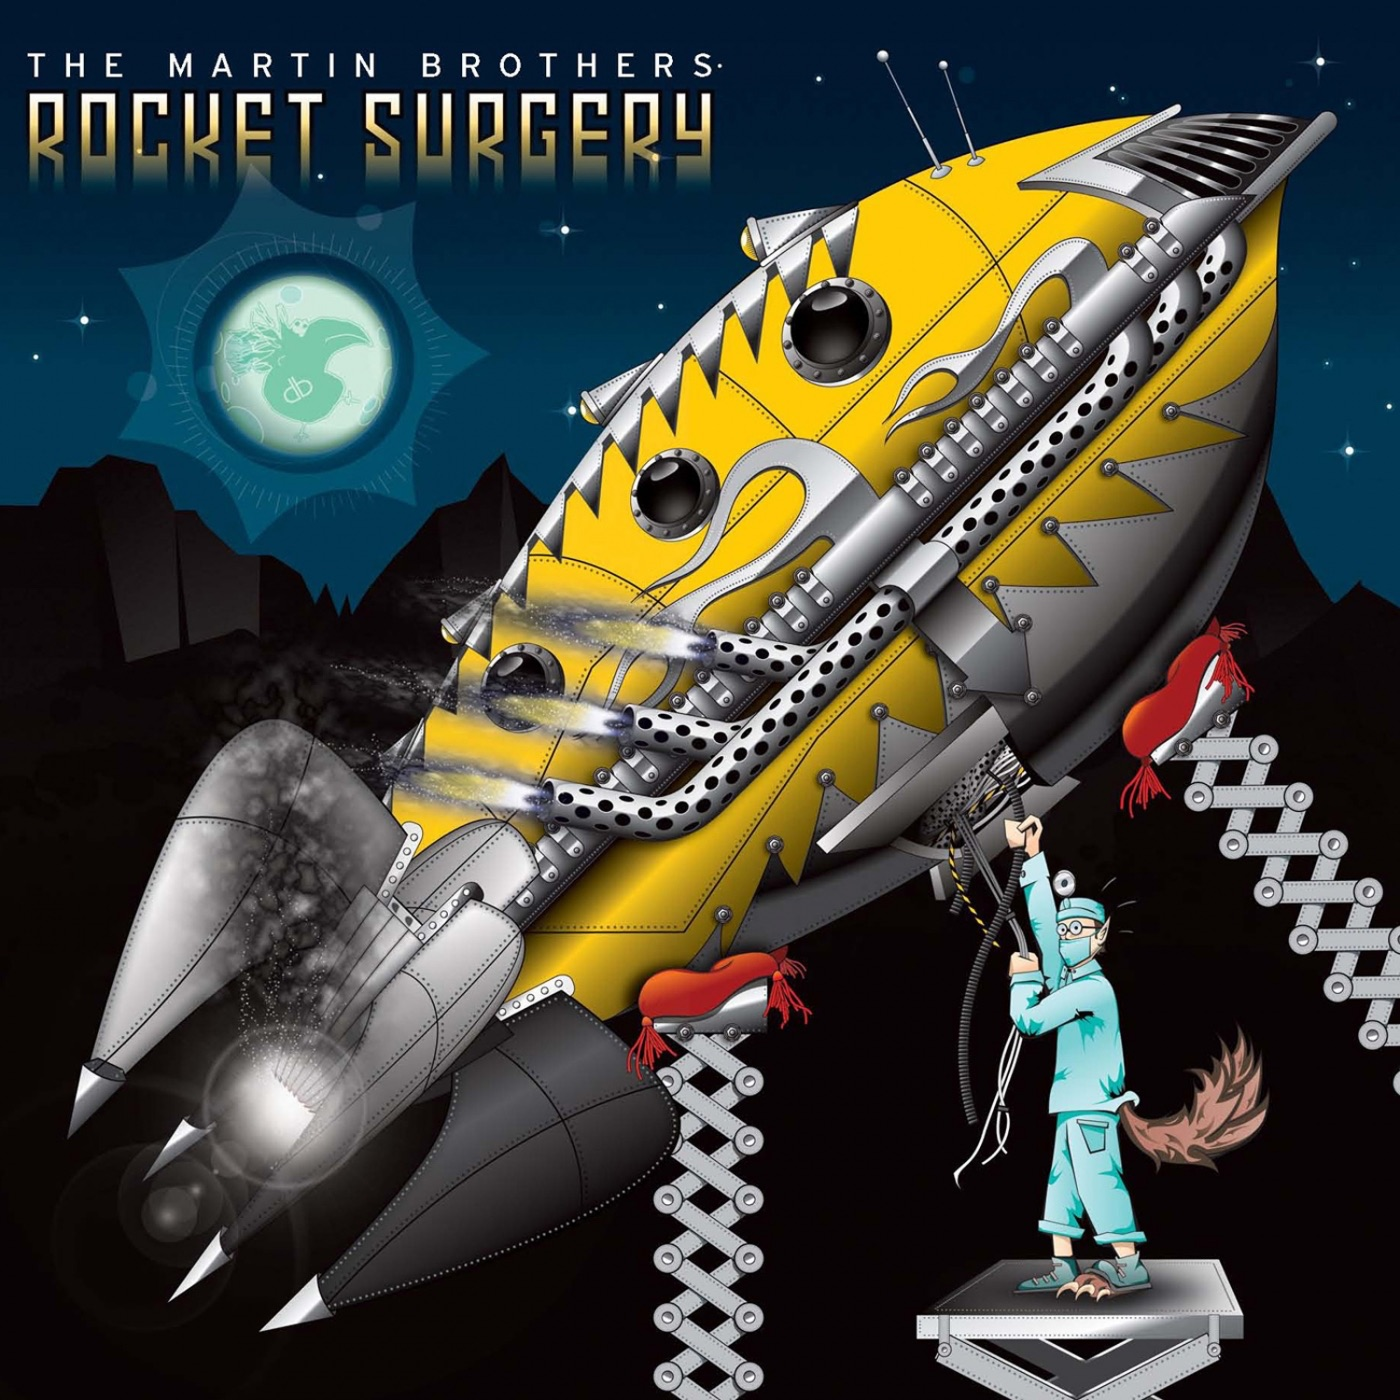 The Martin Brothers album Rocket Surgery - EP